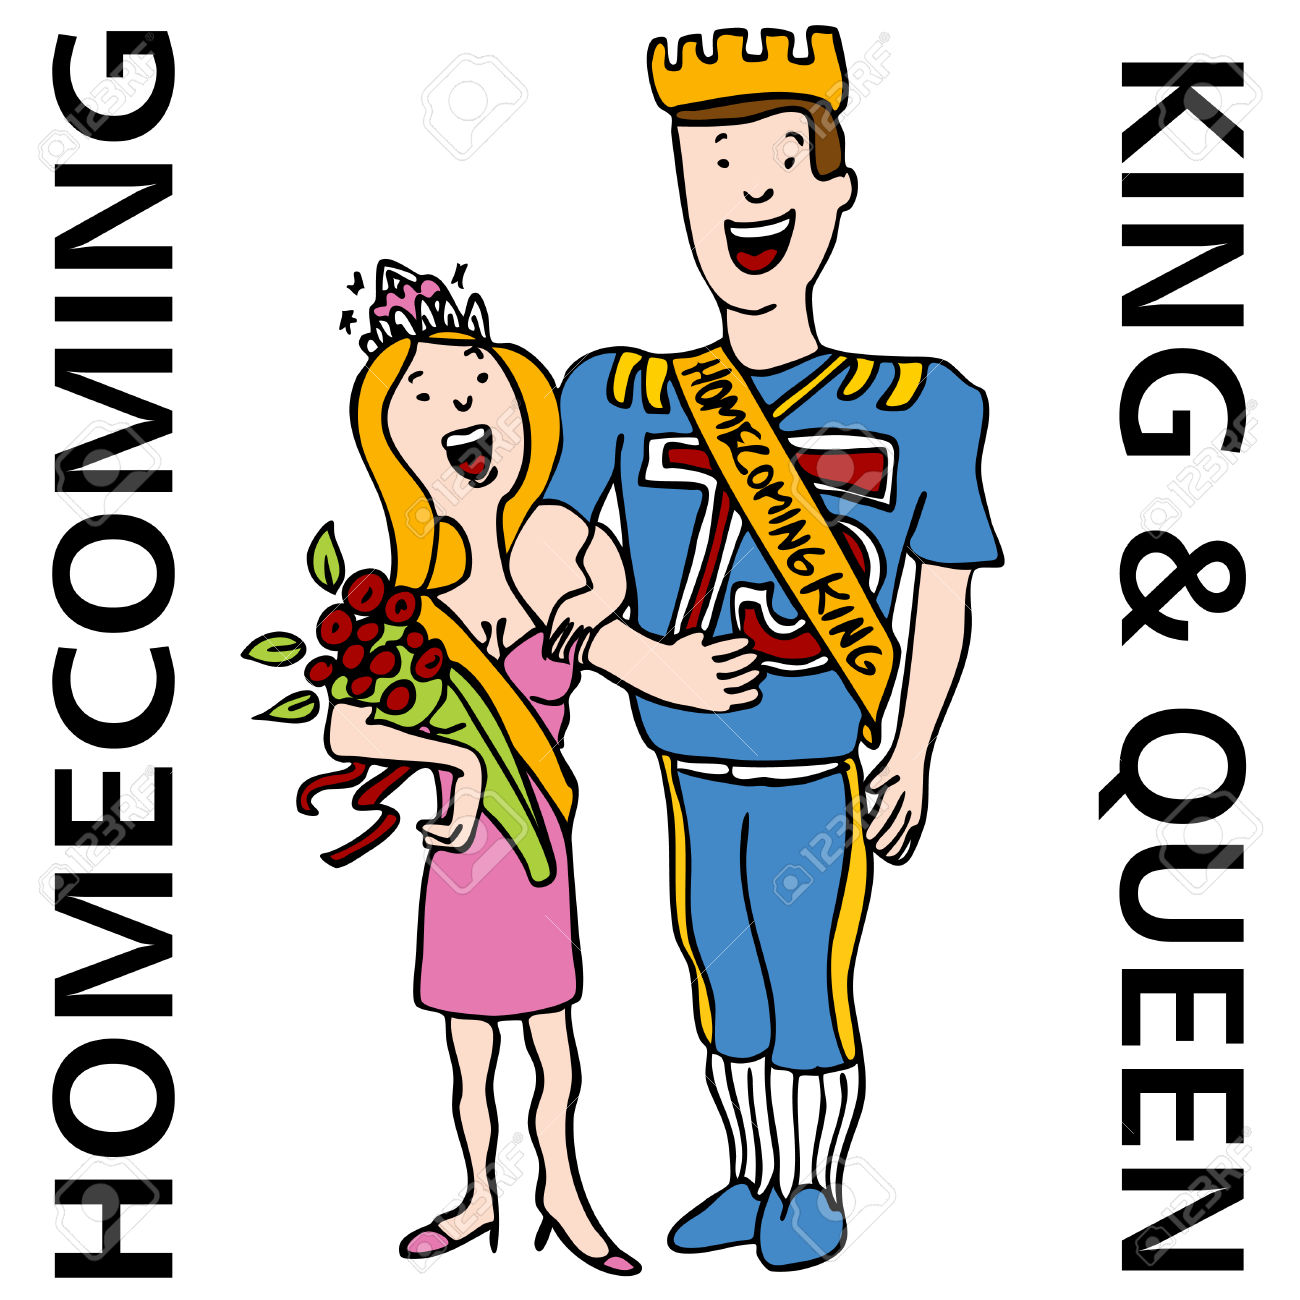 Homecoming king crown clipart png free stock An Image Of The Homecoming King And Queen. Royalty Free Cliparts ... png free stock